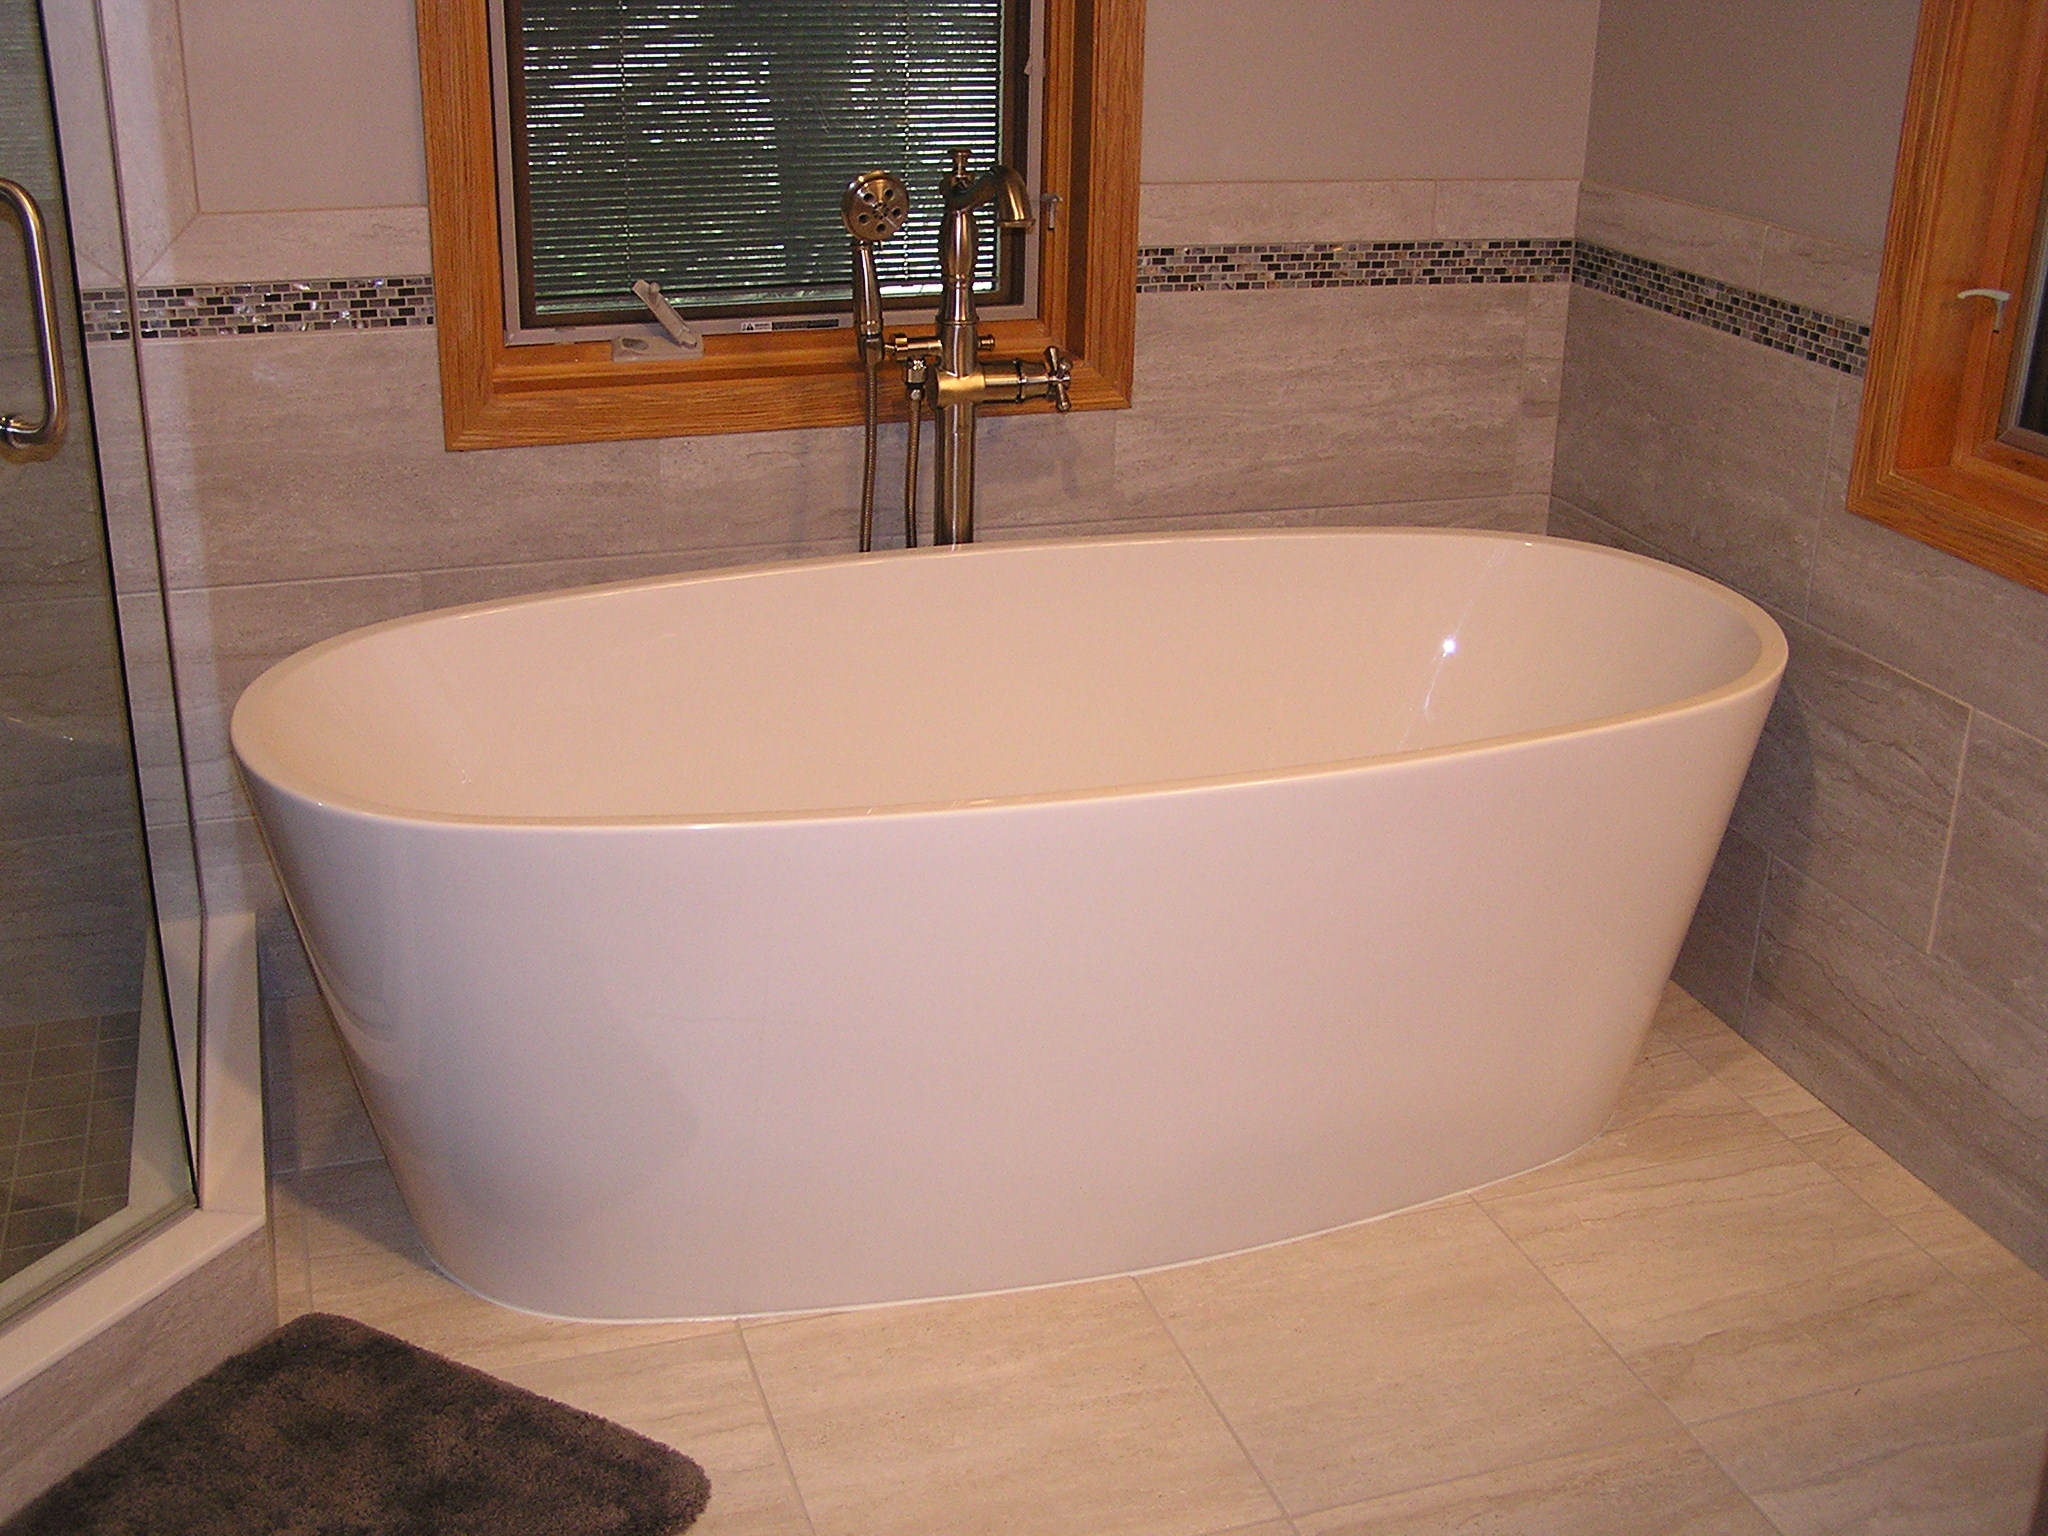 Soaker tub in Twin Cities